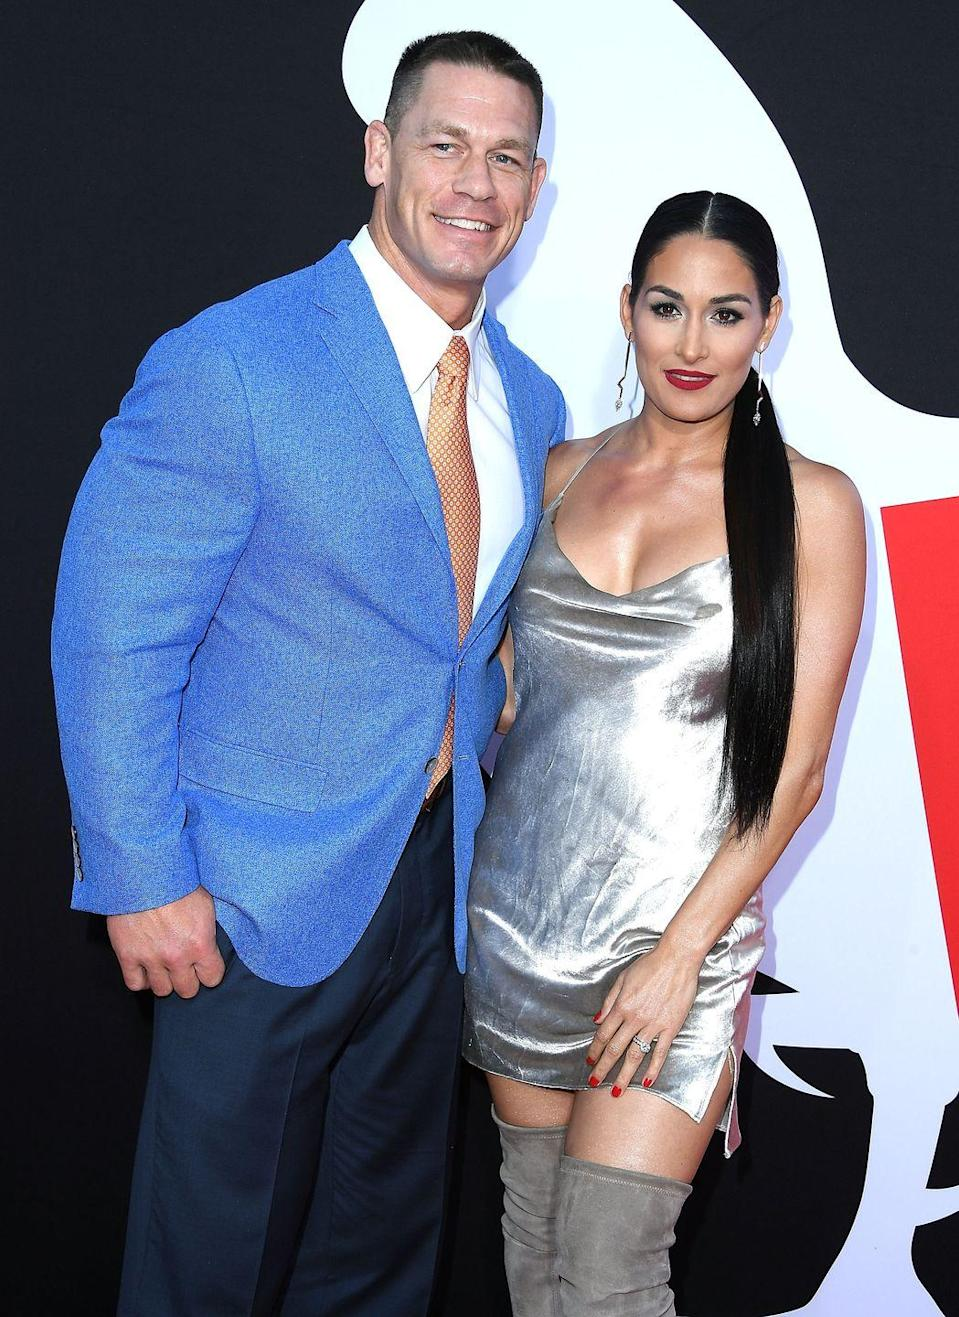 """<p>Bella and Cena went on their first date in 2012, and he proposed in 2017 after many bumps in between. The couple split in April 2018 and <a href=""""https://www.usmagazine.com/celebrity-news/news/nikki-bella-john-cena-back-together-after-calling-off-wedding/"""" rel=""""nofollow noopener"""" target=""""_blank"""" data-ylk=""""slk:allegedly got back together"""" class=""""link rapid-noclick-resp"""">allegedly got back together </a>the month after that. They have both <a href=""""https://www.usmagazine.com/celebrity-news/news/nikki-bellas-boyfriend-artem-chigvintsev-calls-her-his-soul-mate/"""" rel=""""nofollow noopener"""" target=""""_blank"""" data-ylk=""""slk:moved on"""" class=""""link rapid-noclick-resp"""">moved on</a> since then. Bella <a href=""""https://www.today.com/popculture/nikki-bella-engaged-artem-chigvintsev-see-ring-t171094"""" rel=""""nofollow noopener"""" target=""""_blank"""" data-ylk=""""slk:is now engaged"""" class=""""link rapid-noclick-resp"""">is now engaged</a> to professional dancer Artem Chigvintsev.</p>"""